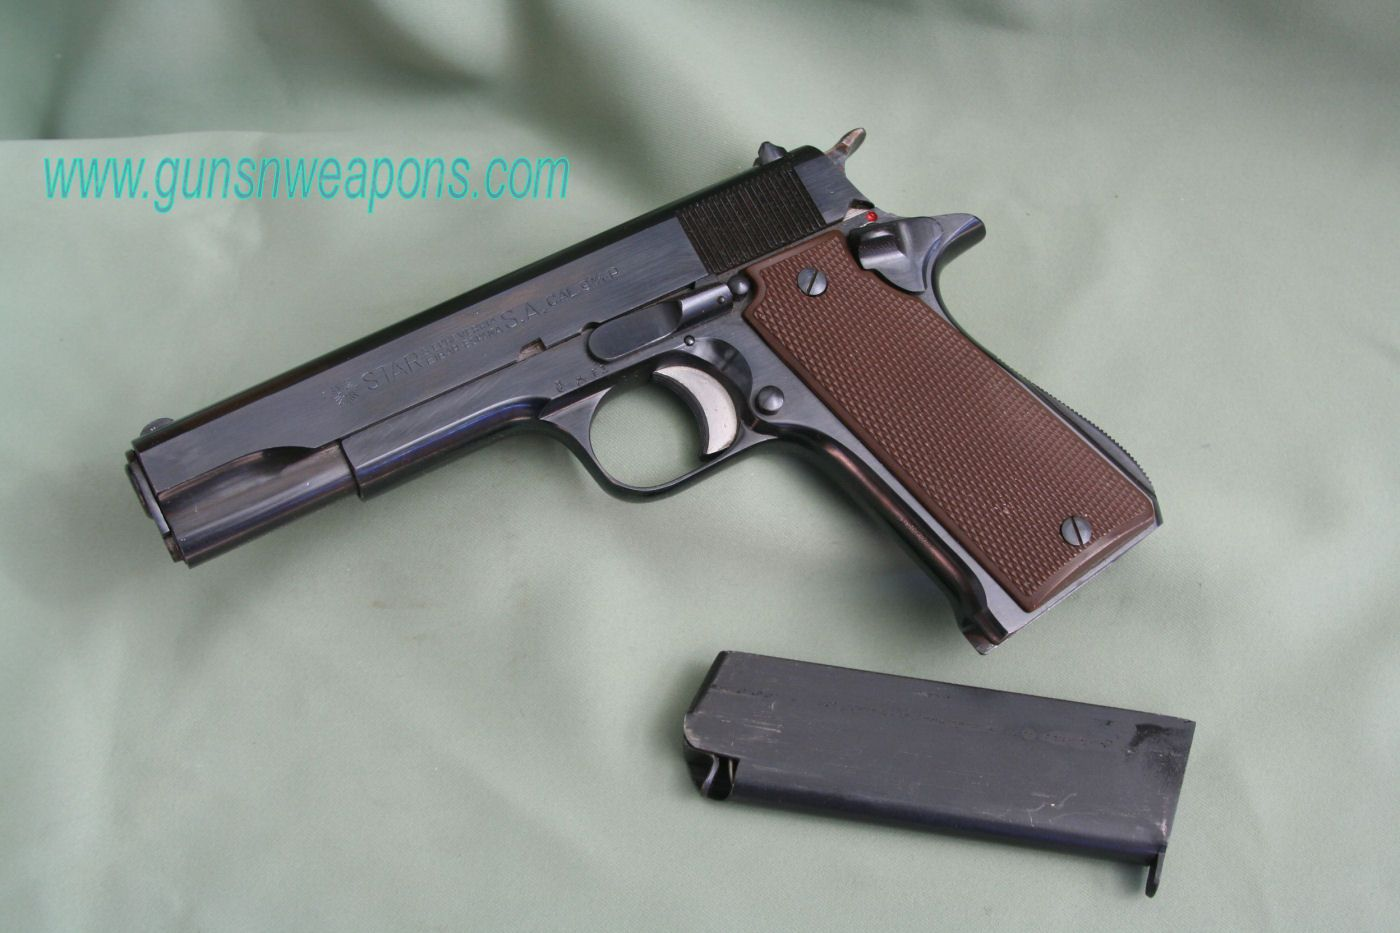 medium resolution of star model b 9mm semi auto pistol